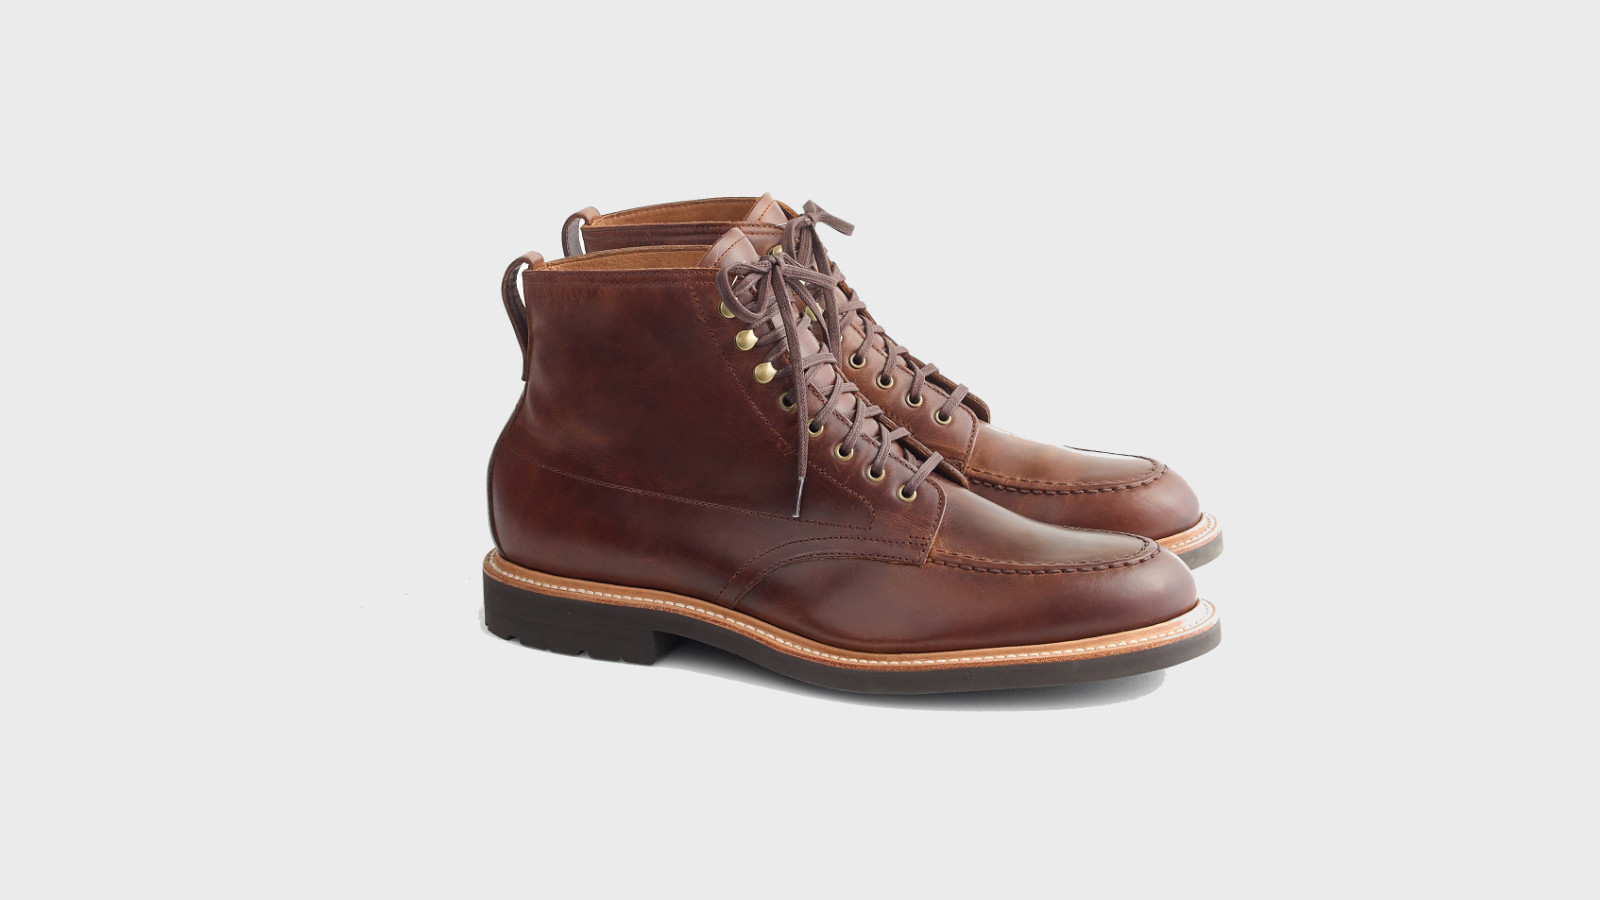 J. Crew Kenton Boot Men's Winter Fashion